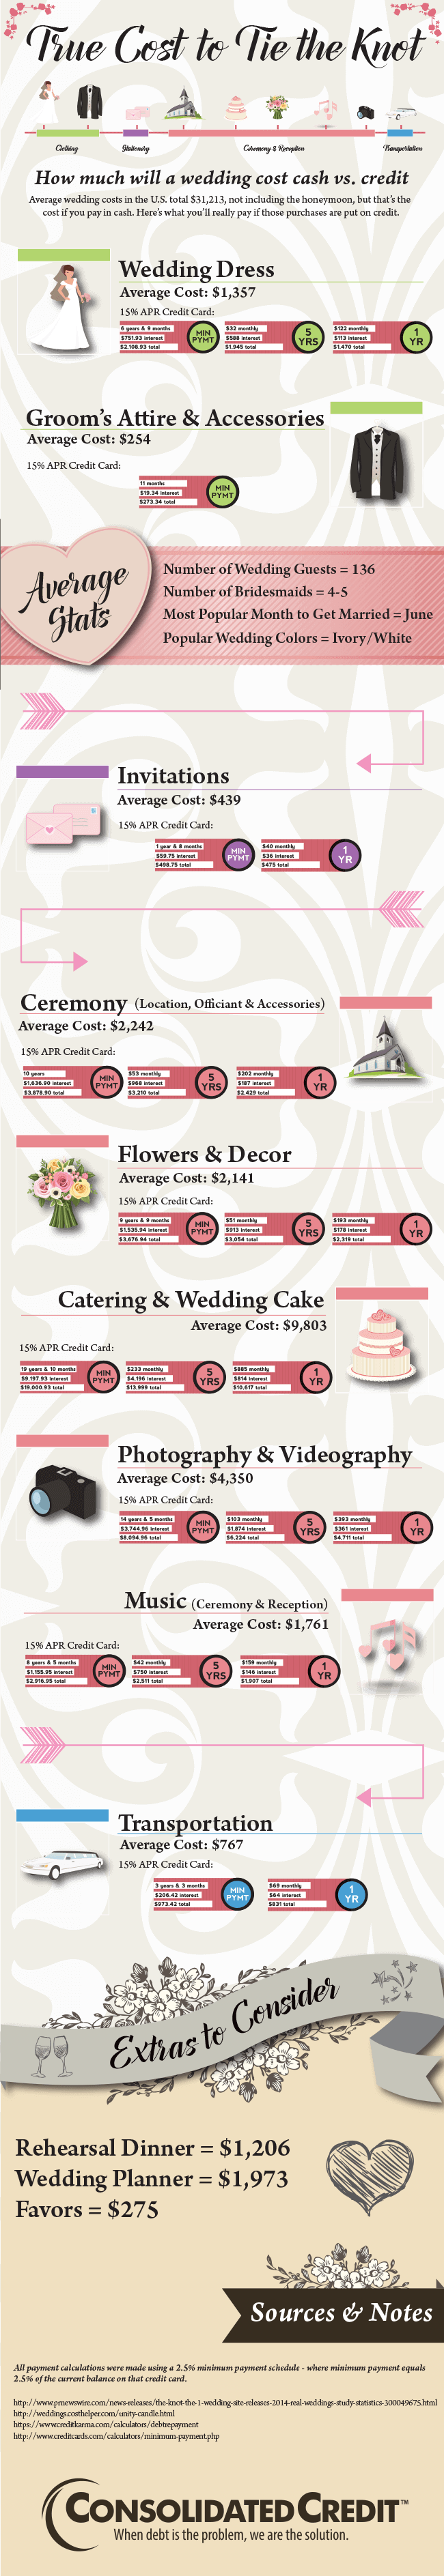 Real wedding budget cost with interest added